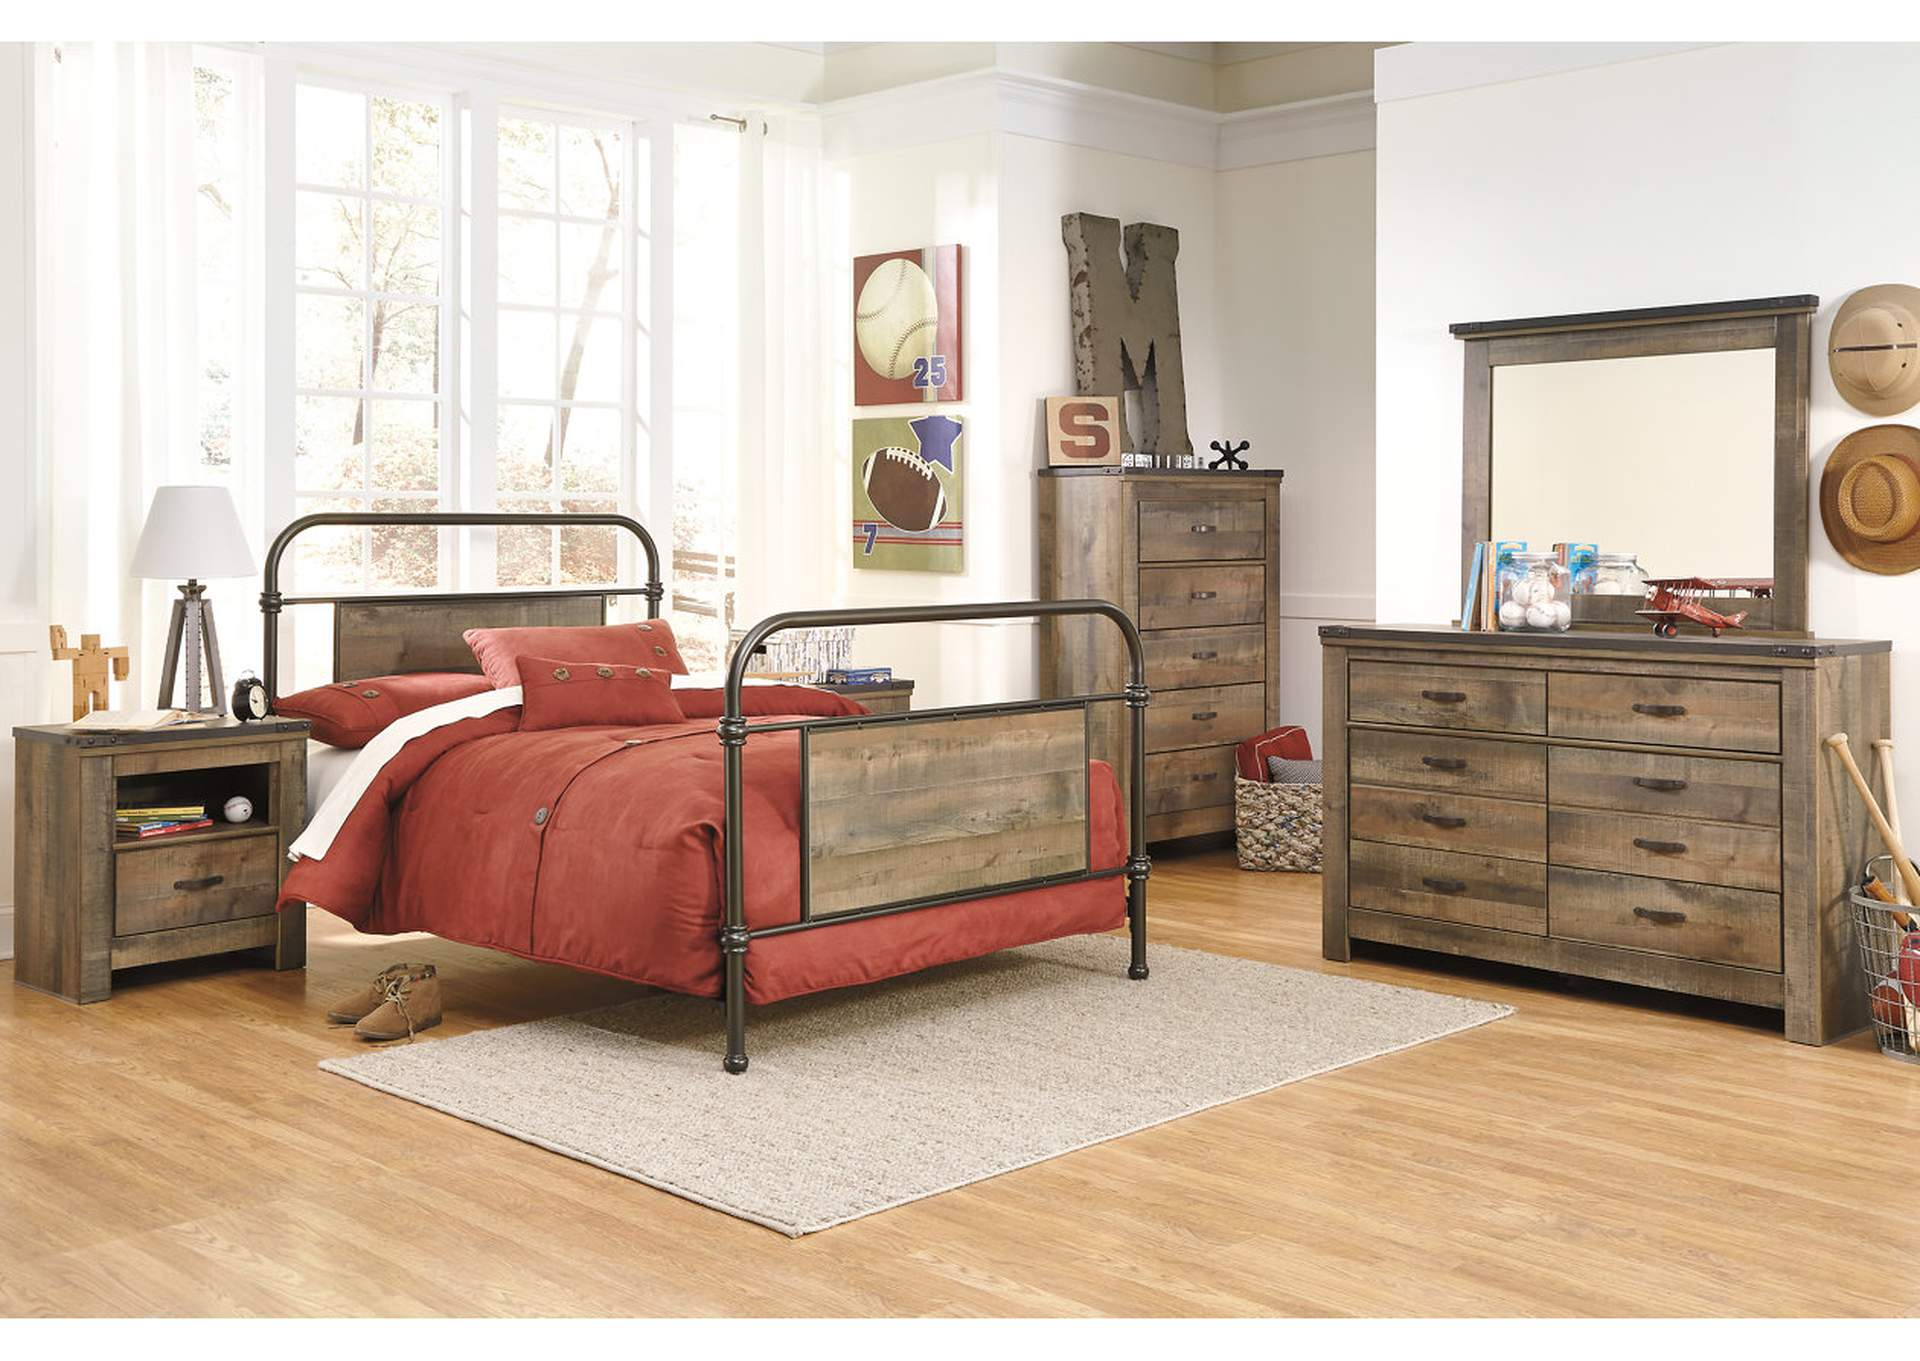 Trinell Brown Full Metal Bed w/Dresser, Mirror, Drawer Chest & Nightstand,Signature Design By Ashley